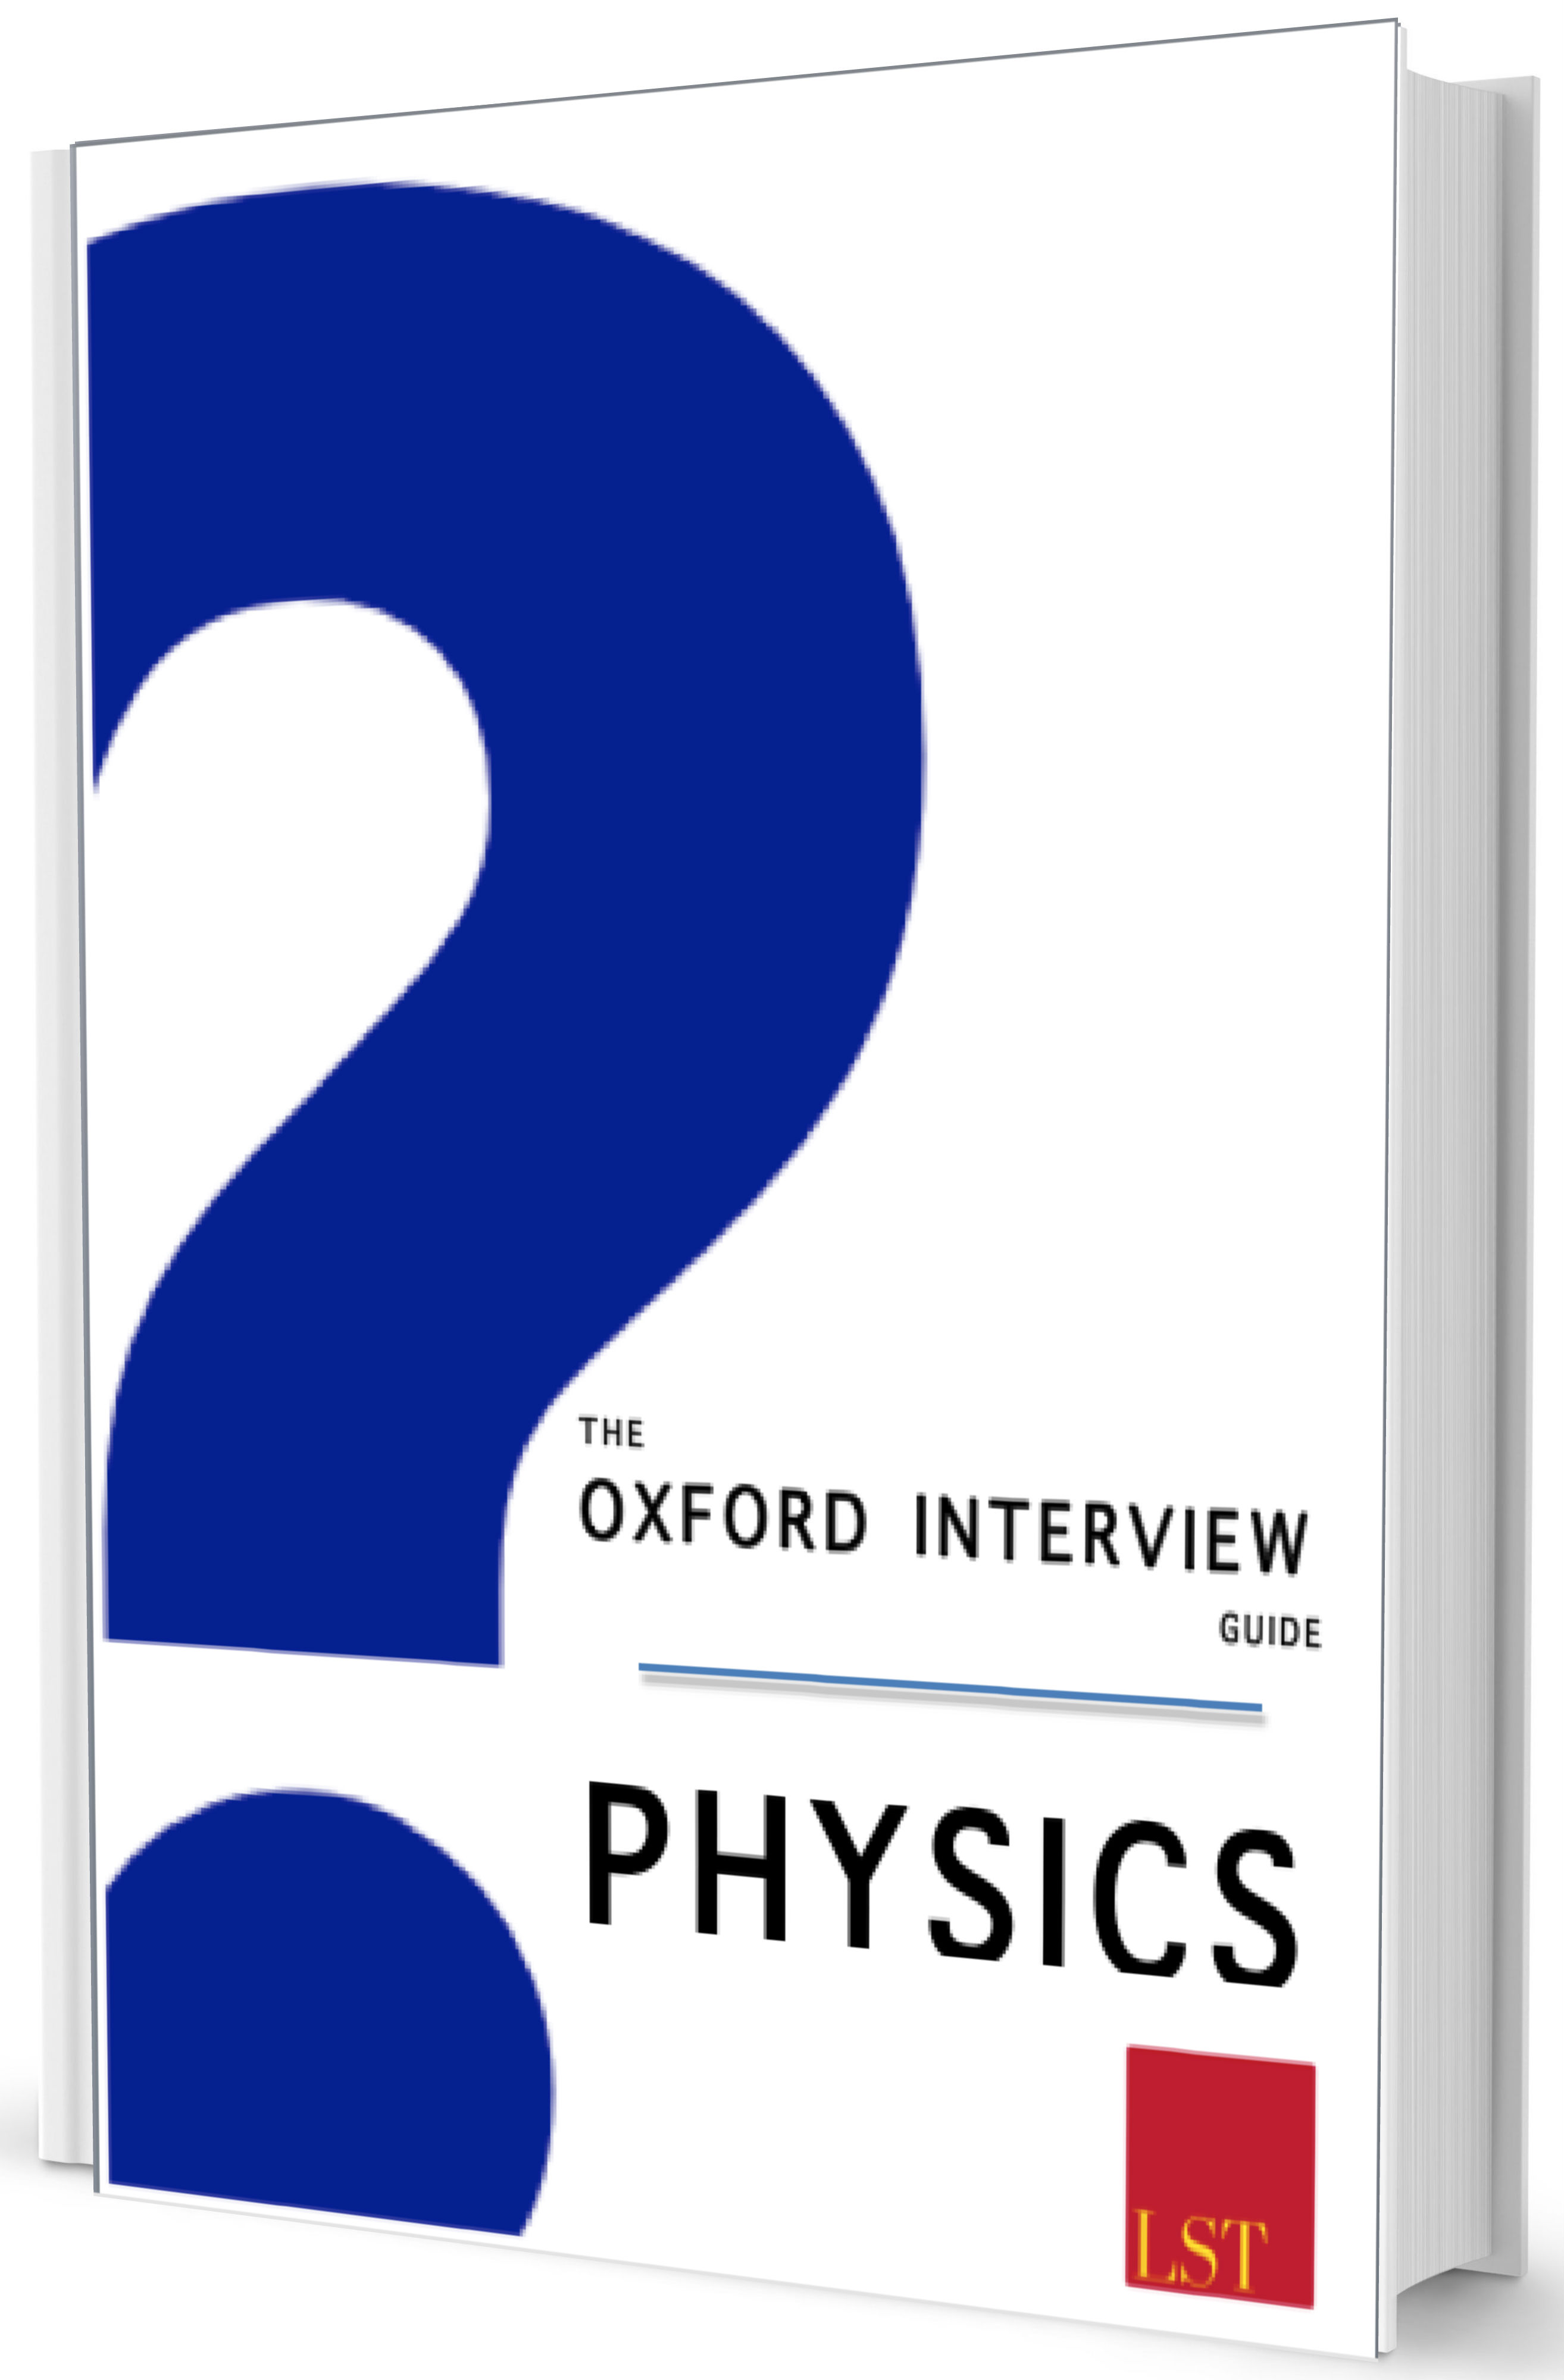 Captivating The Oxford Interview Guide U2013 Physics